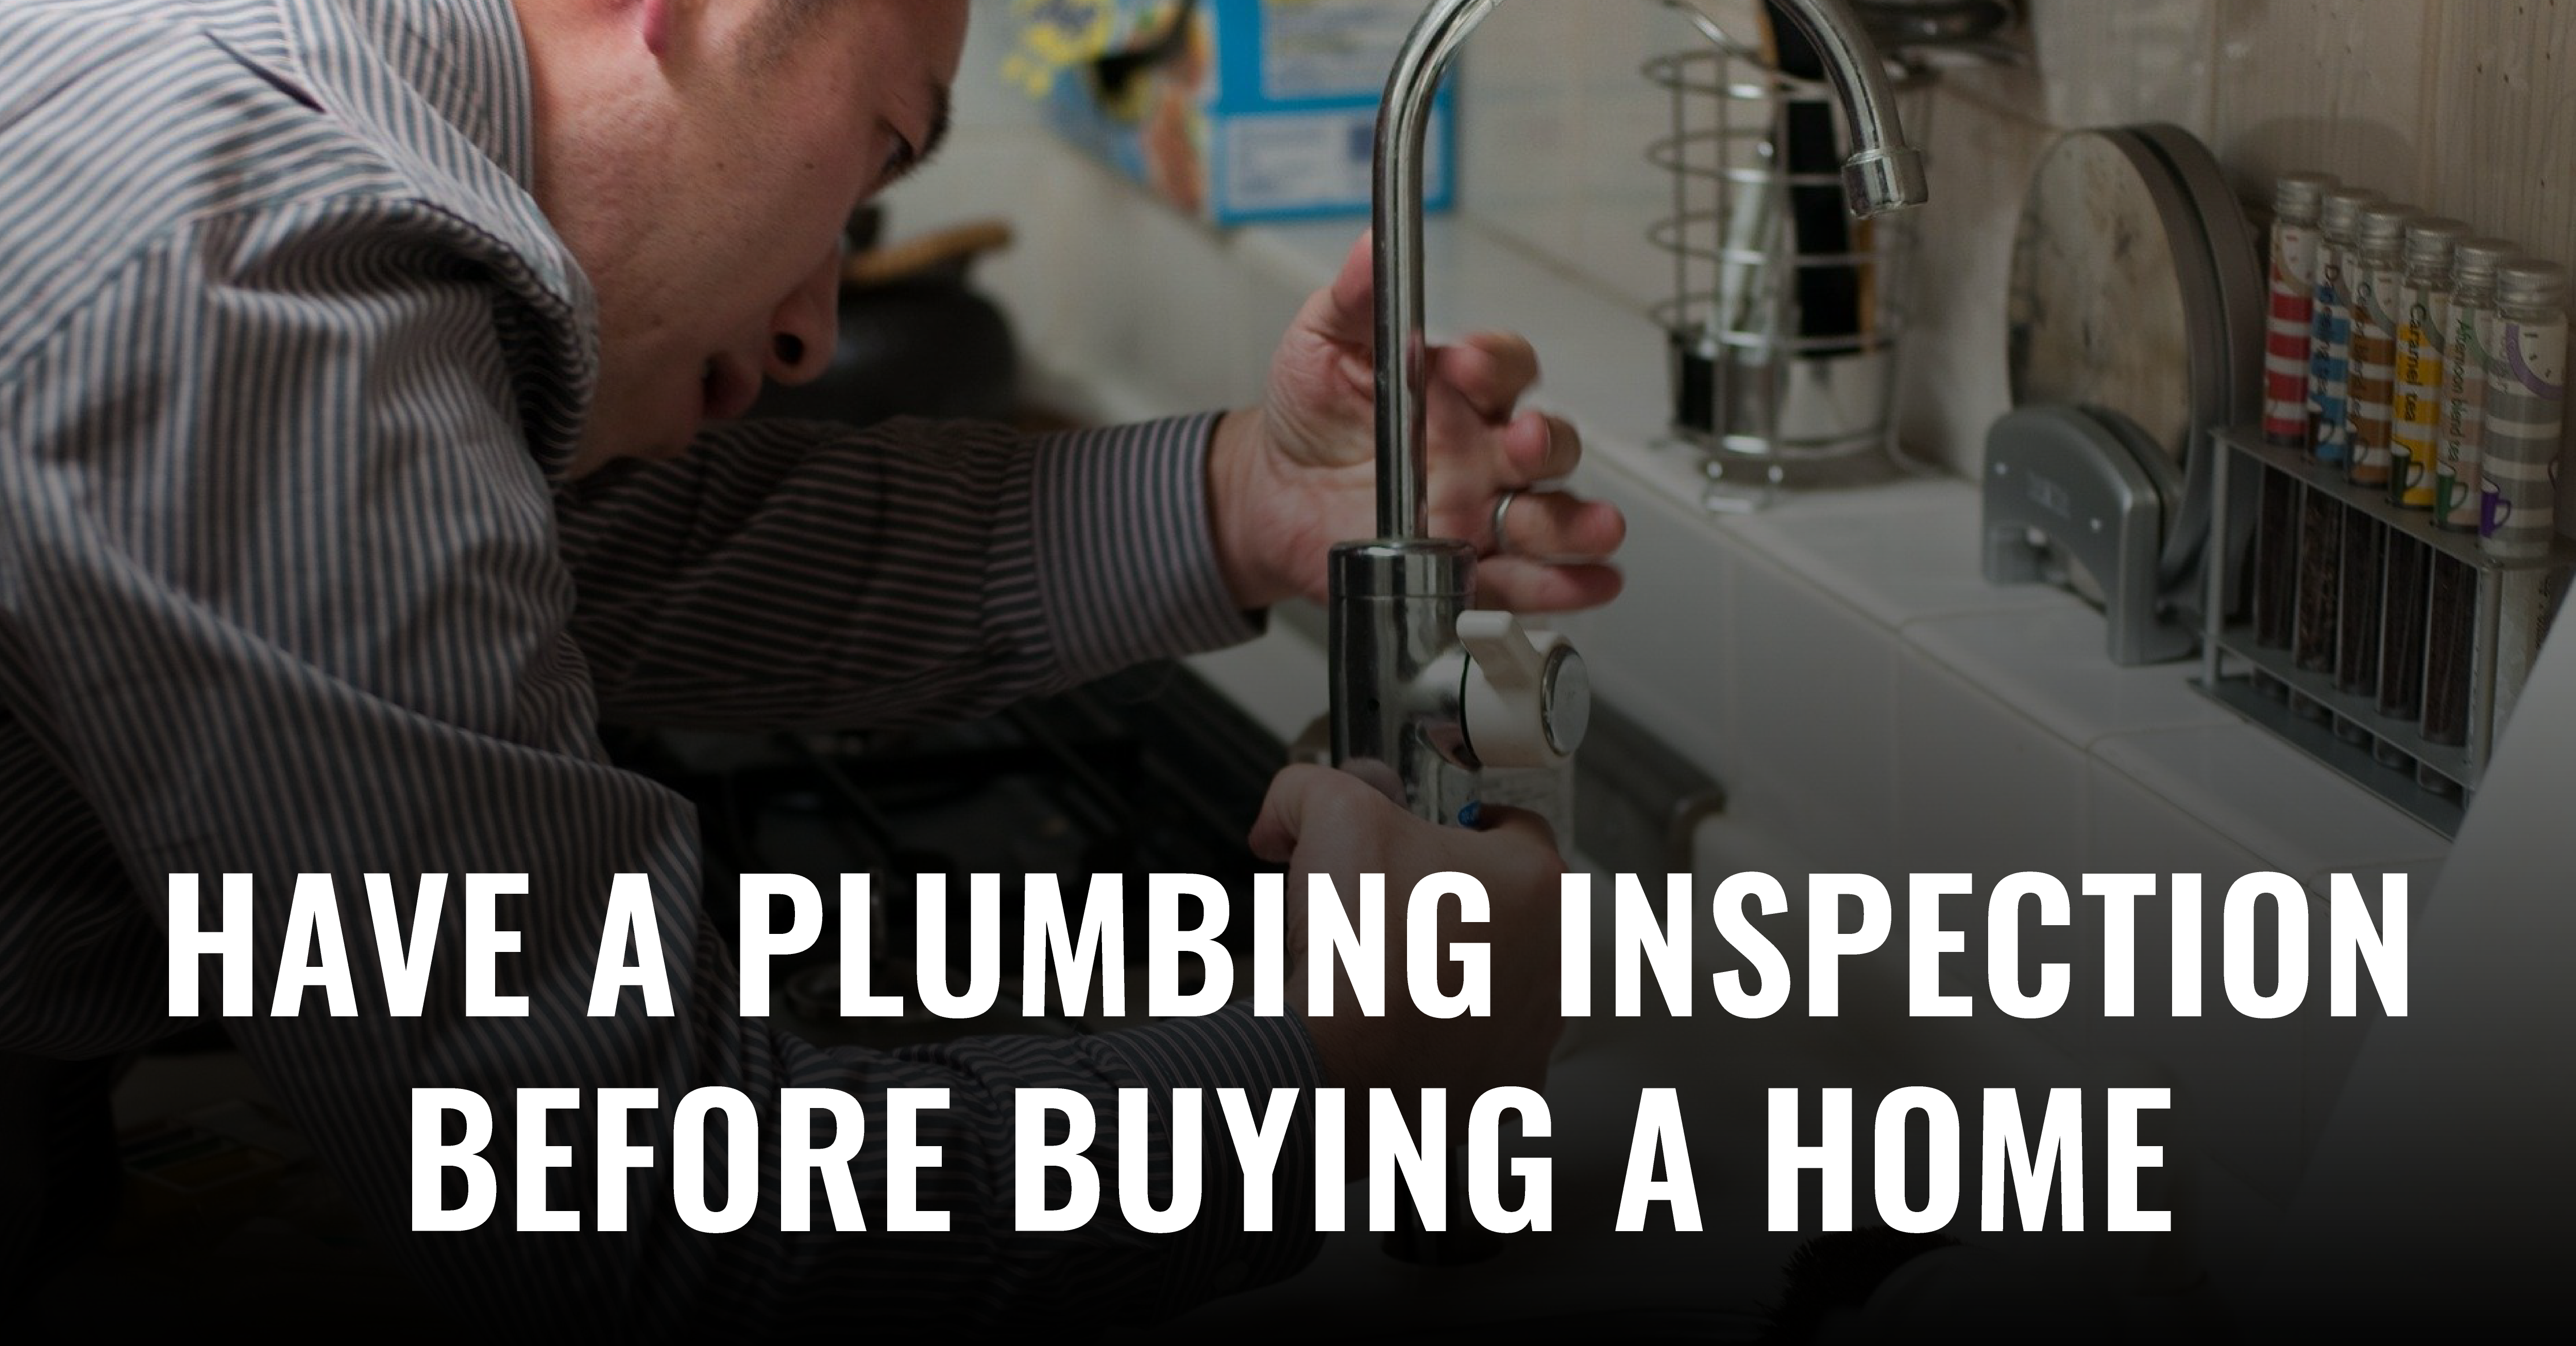 Why You Should Have A Plumbing Inspection Done Before Buying A Home